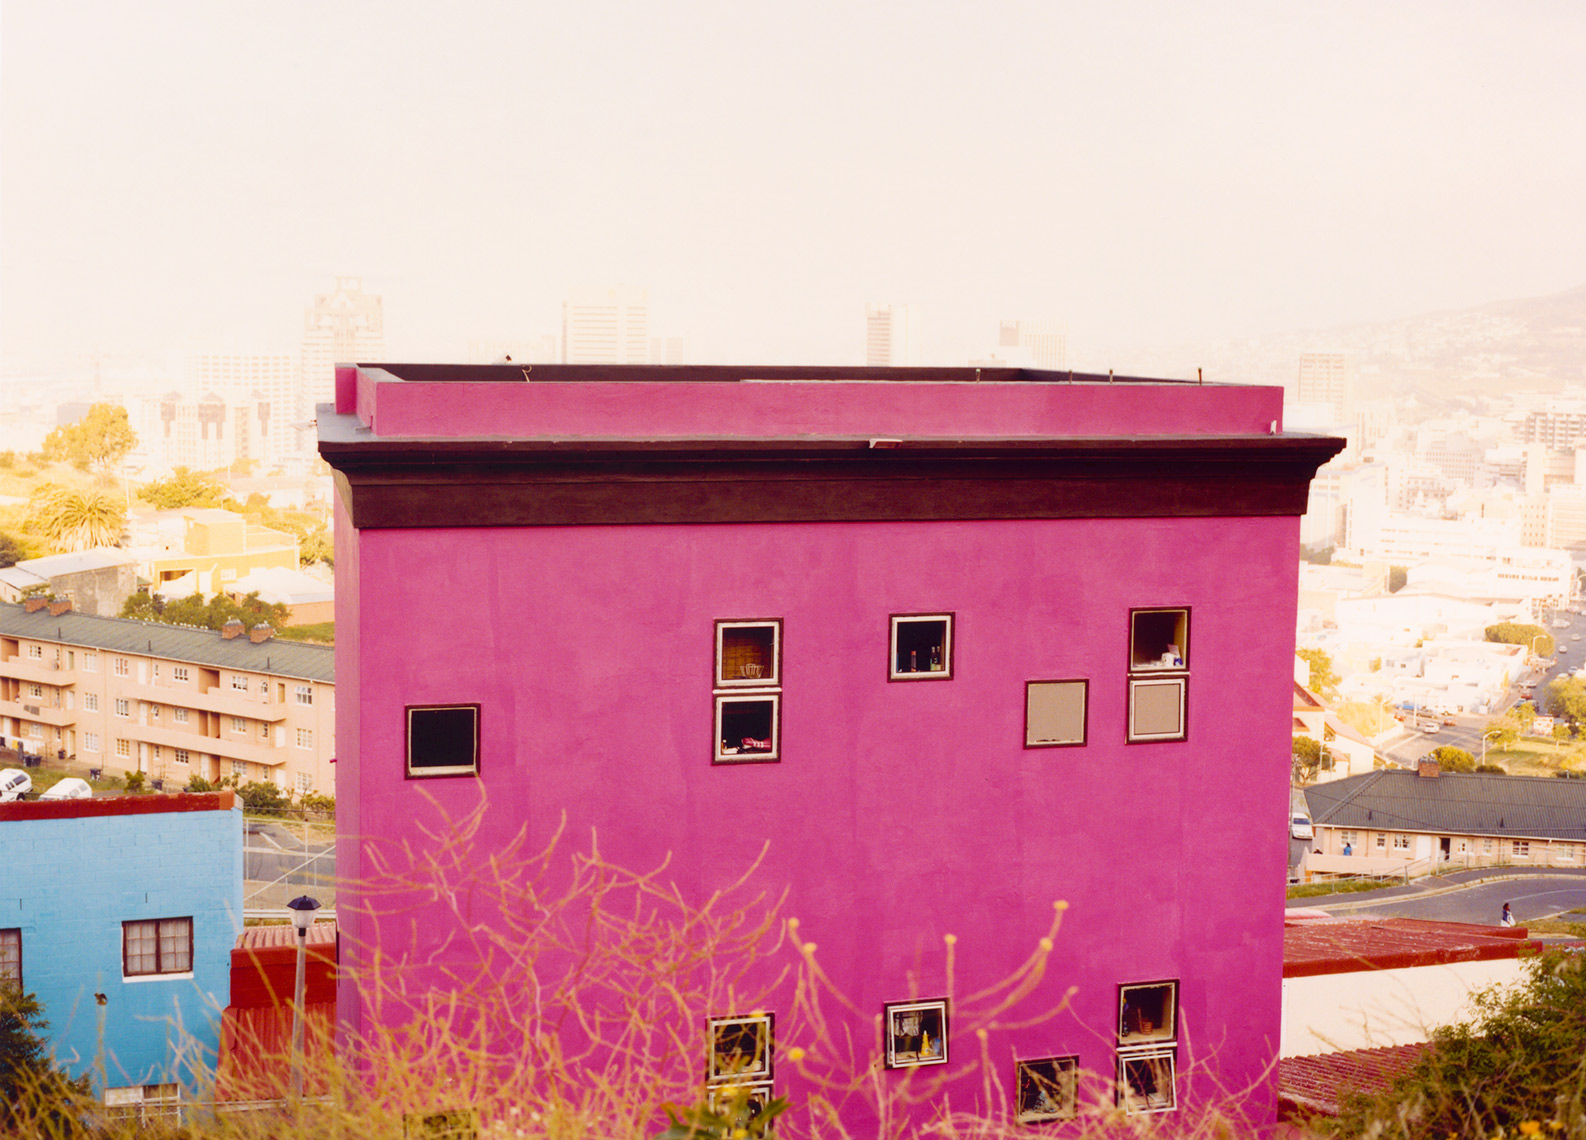 TRAVEL IMAGE OF PINK HOUSE | TOSCA RADIGONDA PHOTOGRAPHY